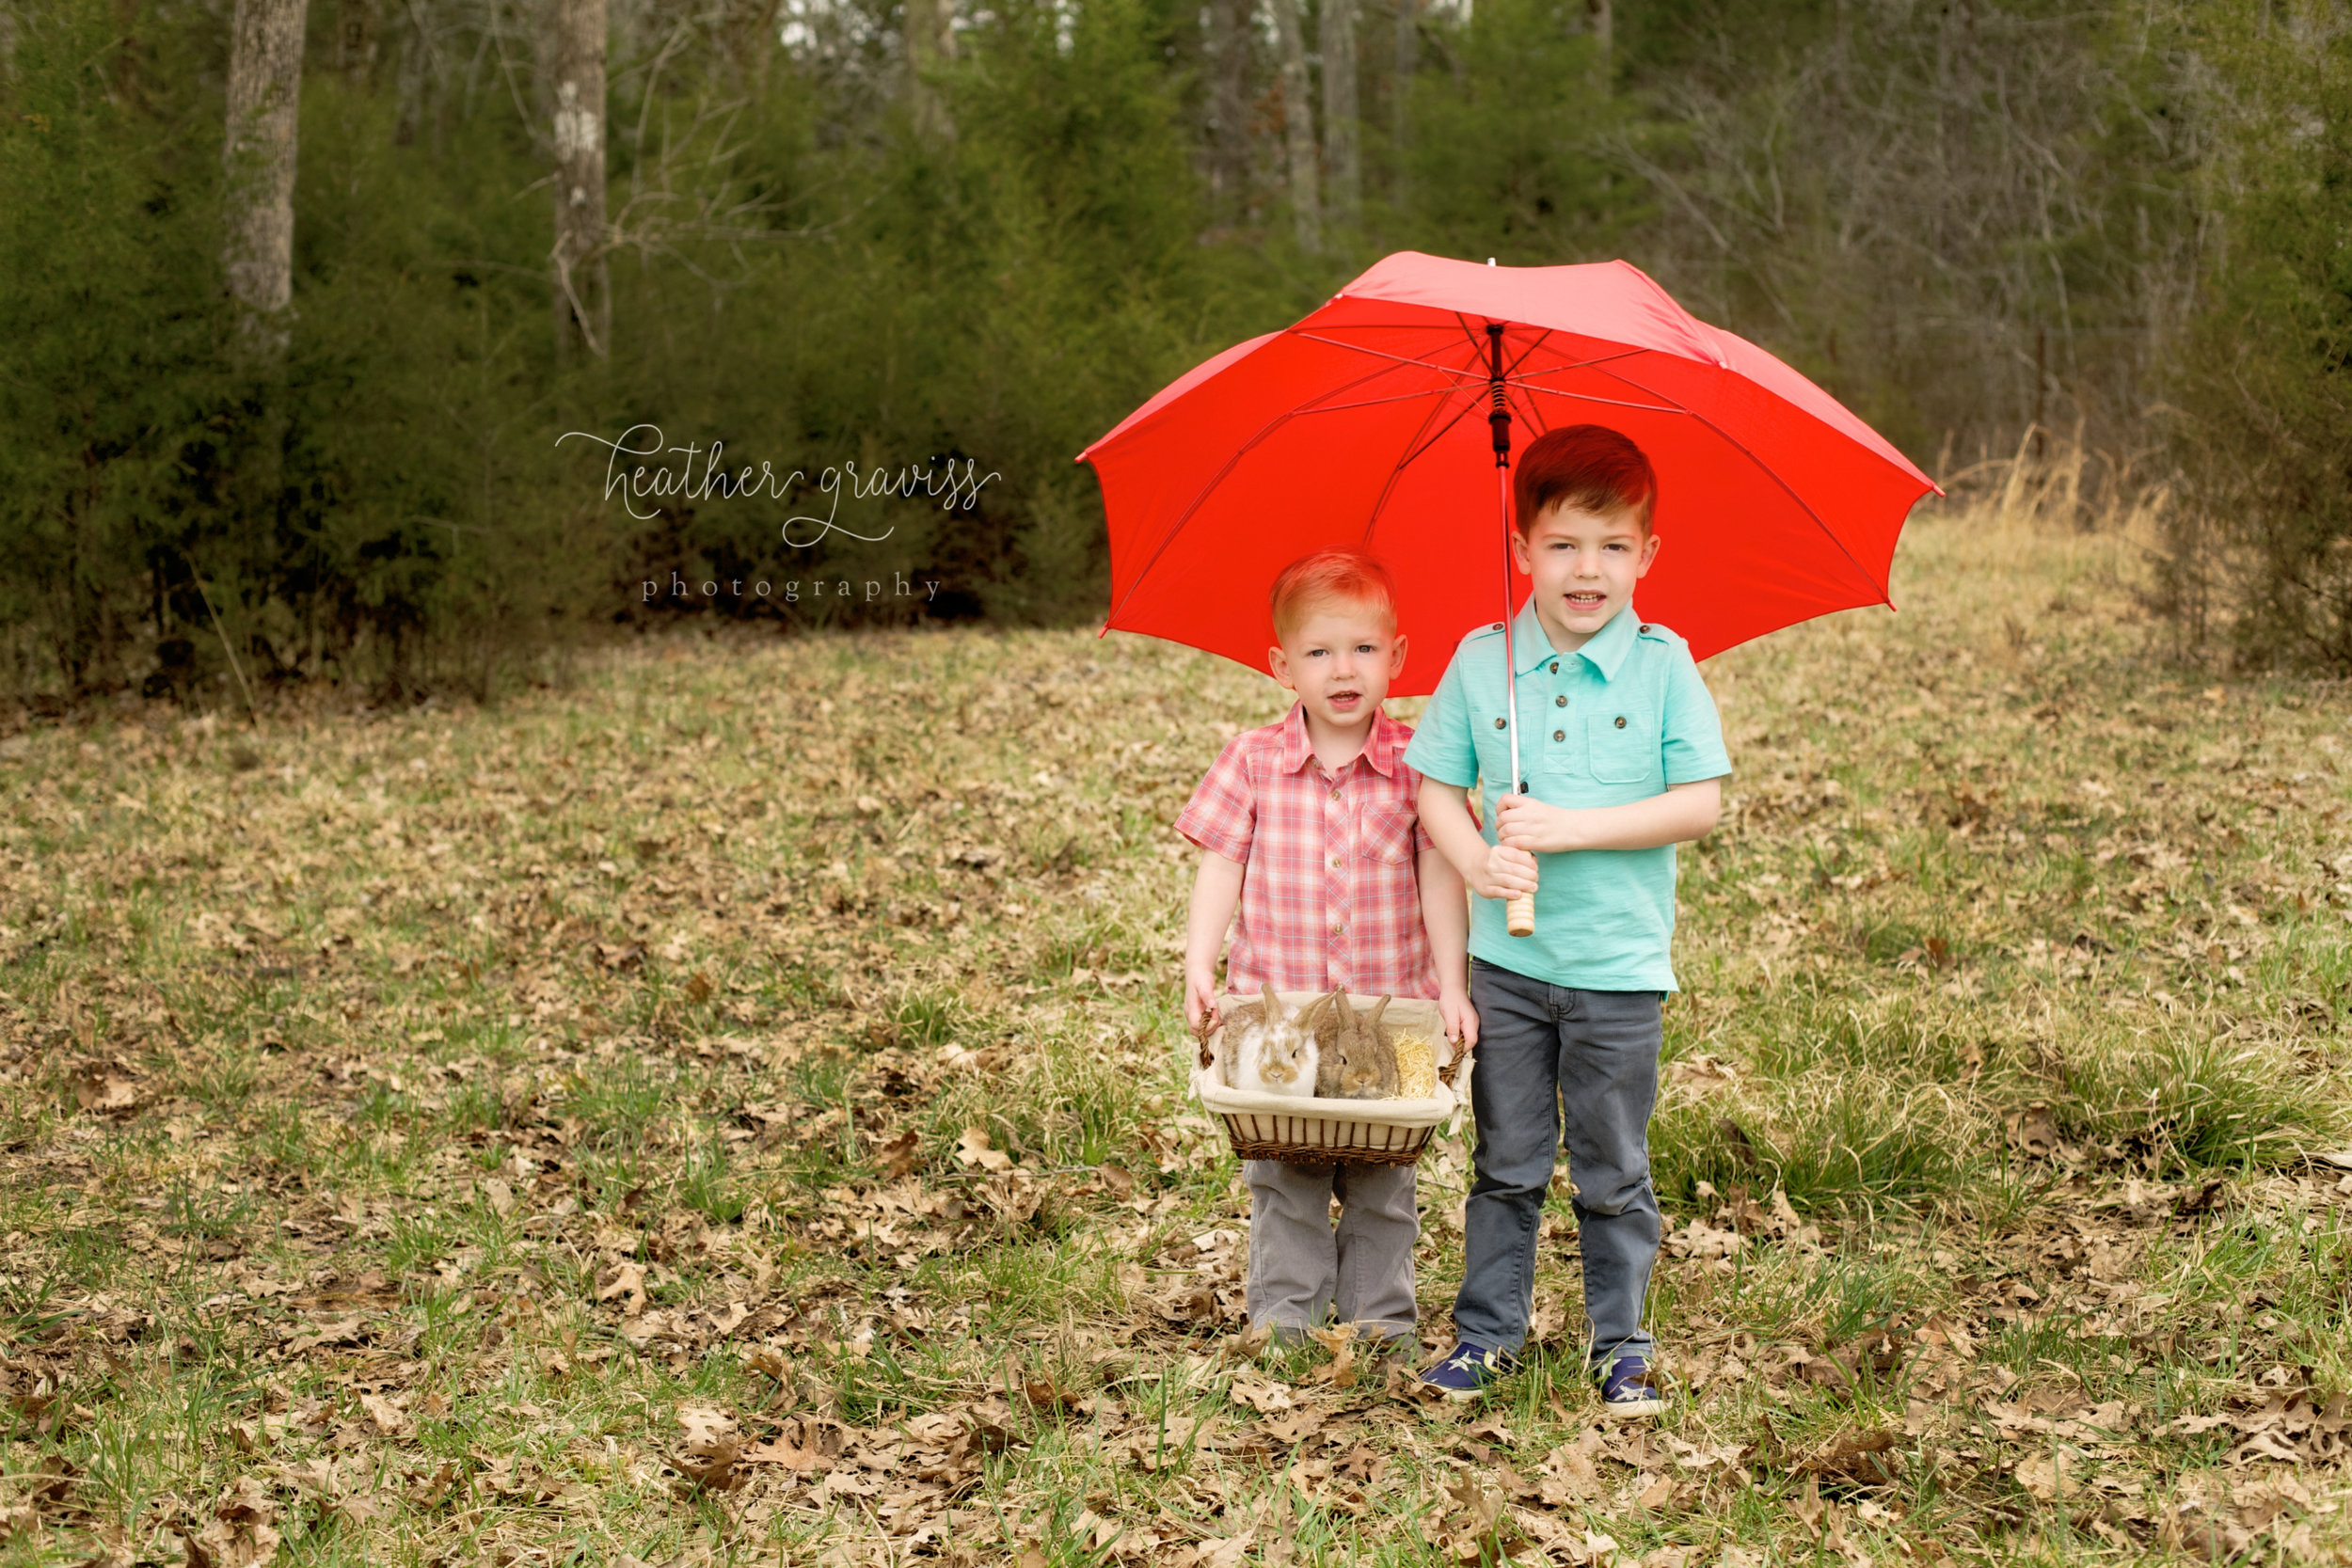 nashville tn photography spring pictures 015.jpg